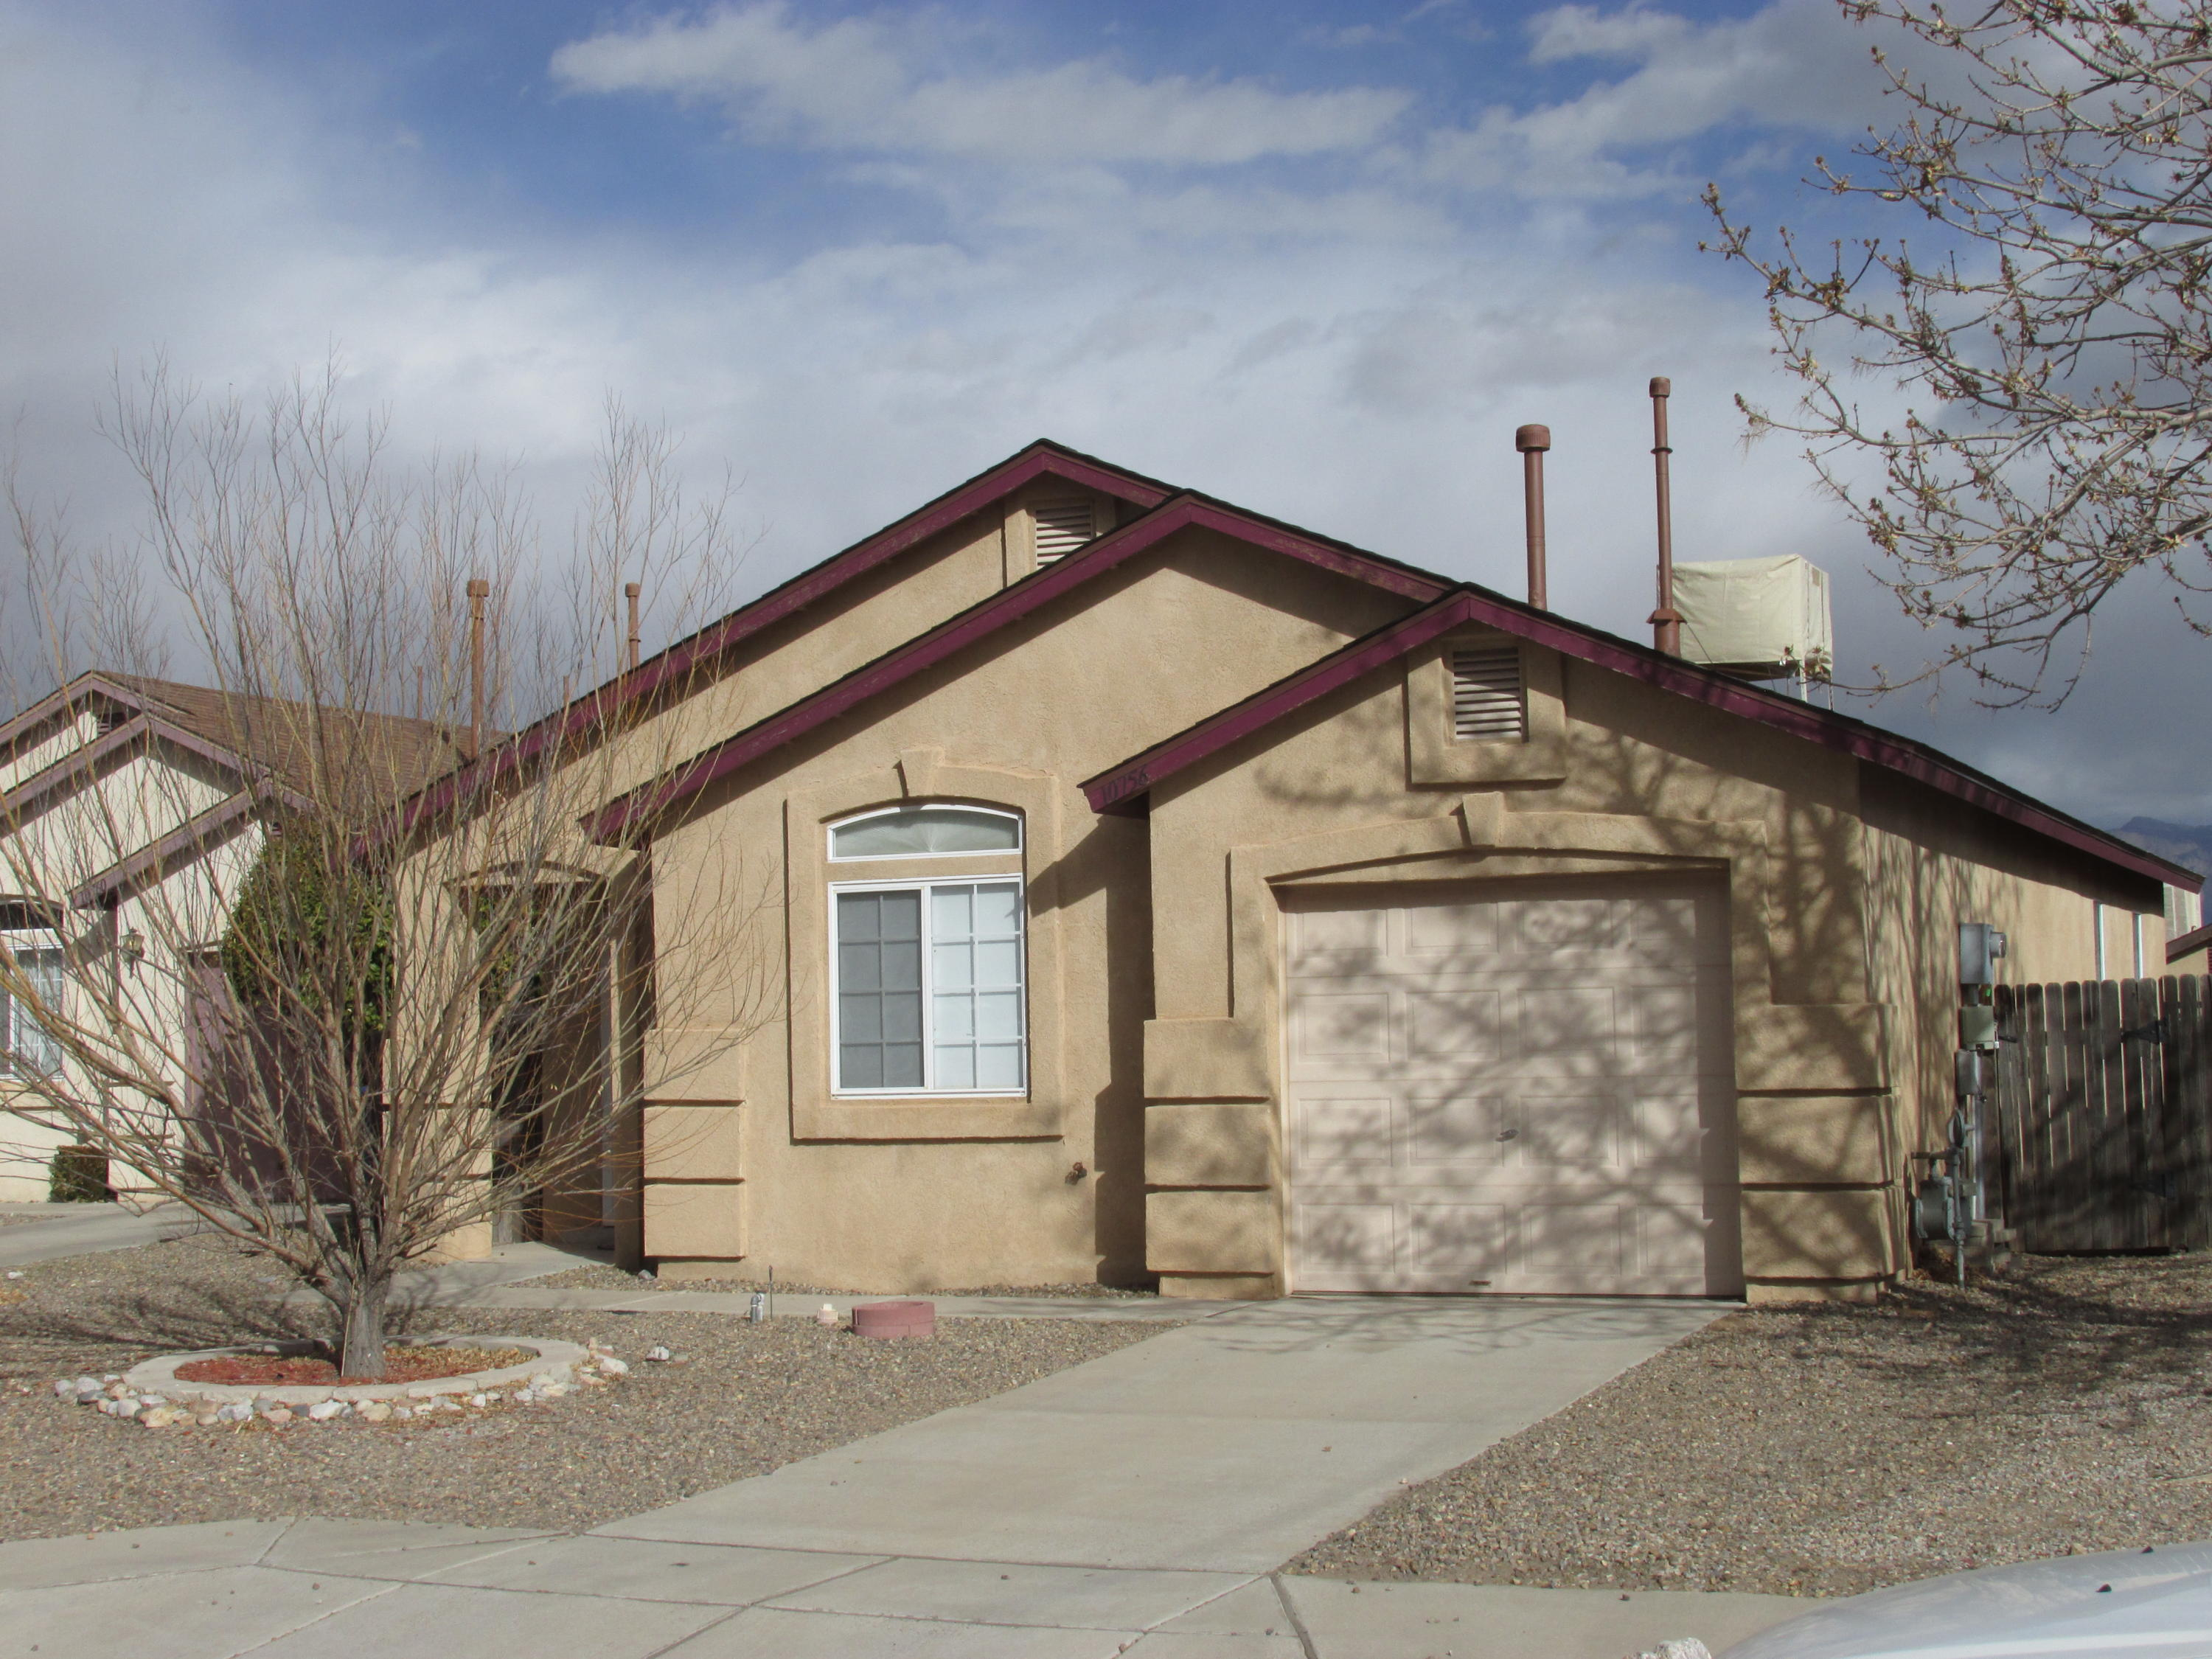 This two bedroom home (with two full bathrooms) has views of the Sandias from the kitchen and master bedroom. It also had a new roof installed in January 2021. You could be the one who enjoys transforming the backyard into an oasis.  With vaulted ceilings and a 19 foot long kitchen and dining area, you could be cooking and living here in less than 60 days depending on your lender.  The gas fireplace adds ambiance and takes up no floorspace in the living room.  Longford built this in 1999 and the house is only five minutes away from Rust Medical by car.